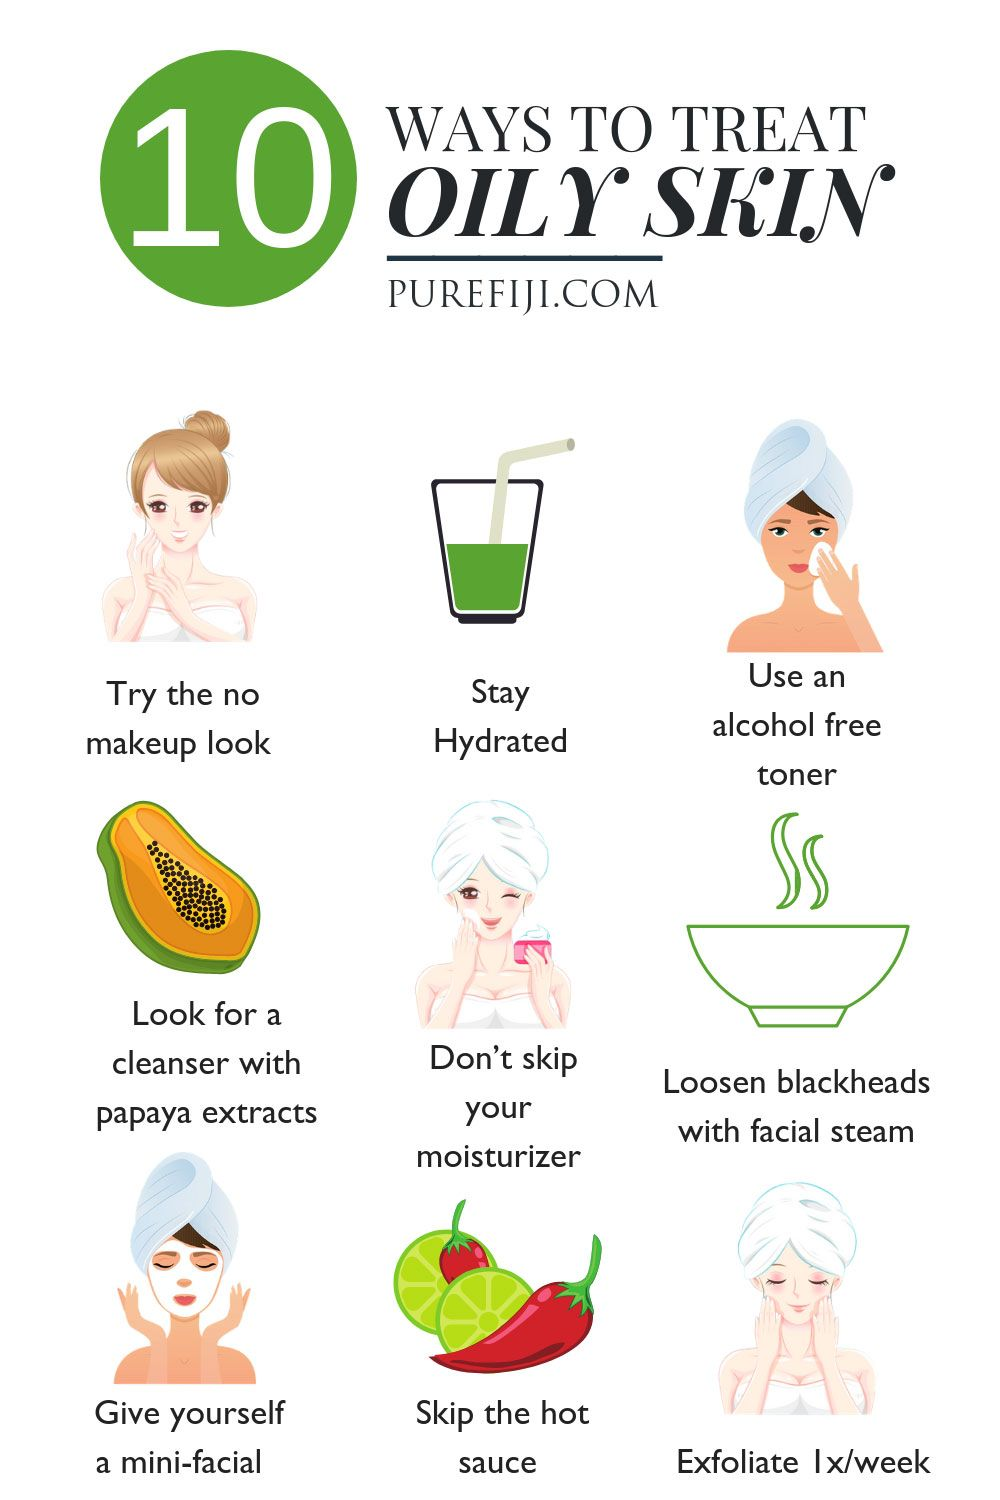 Skin Care Routine And Natural Remedies For Oily Skin Treating Oily Skin Oily Skin Remedy Oily Skin Care Routine